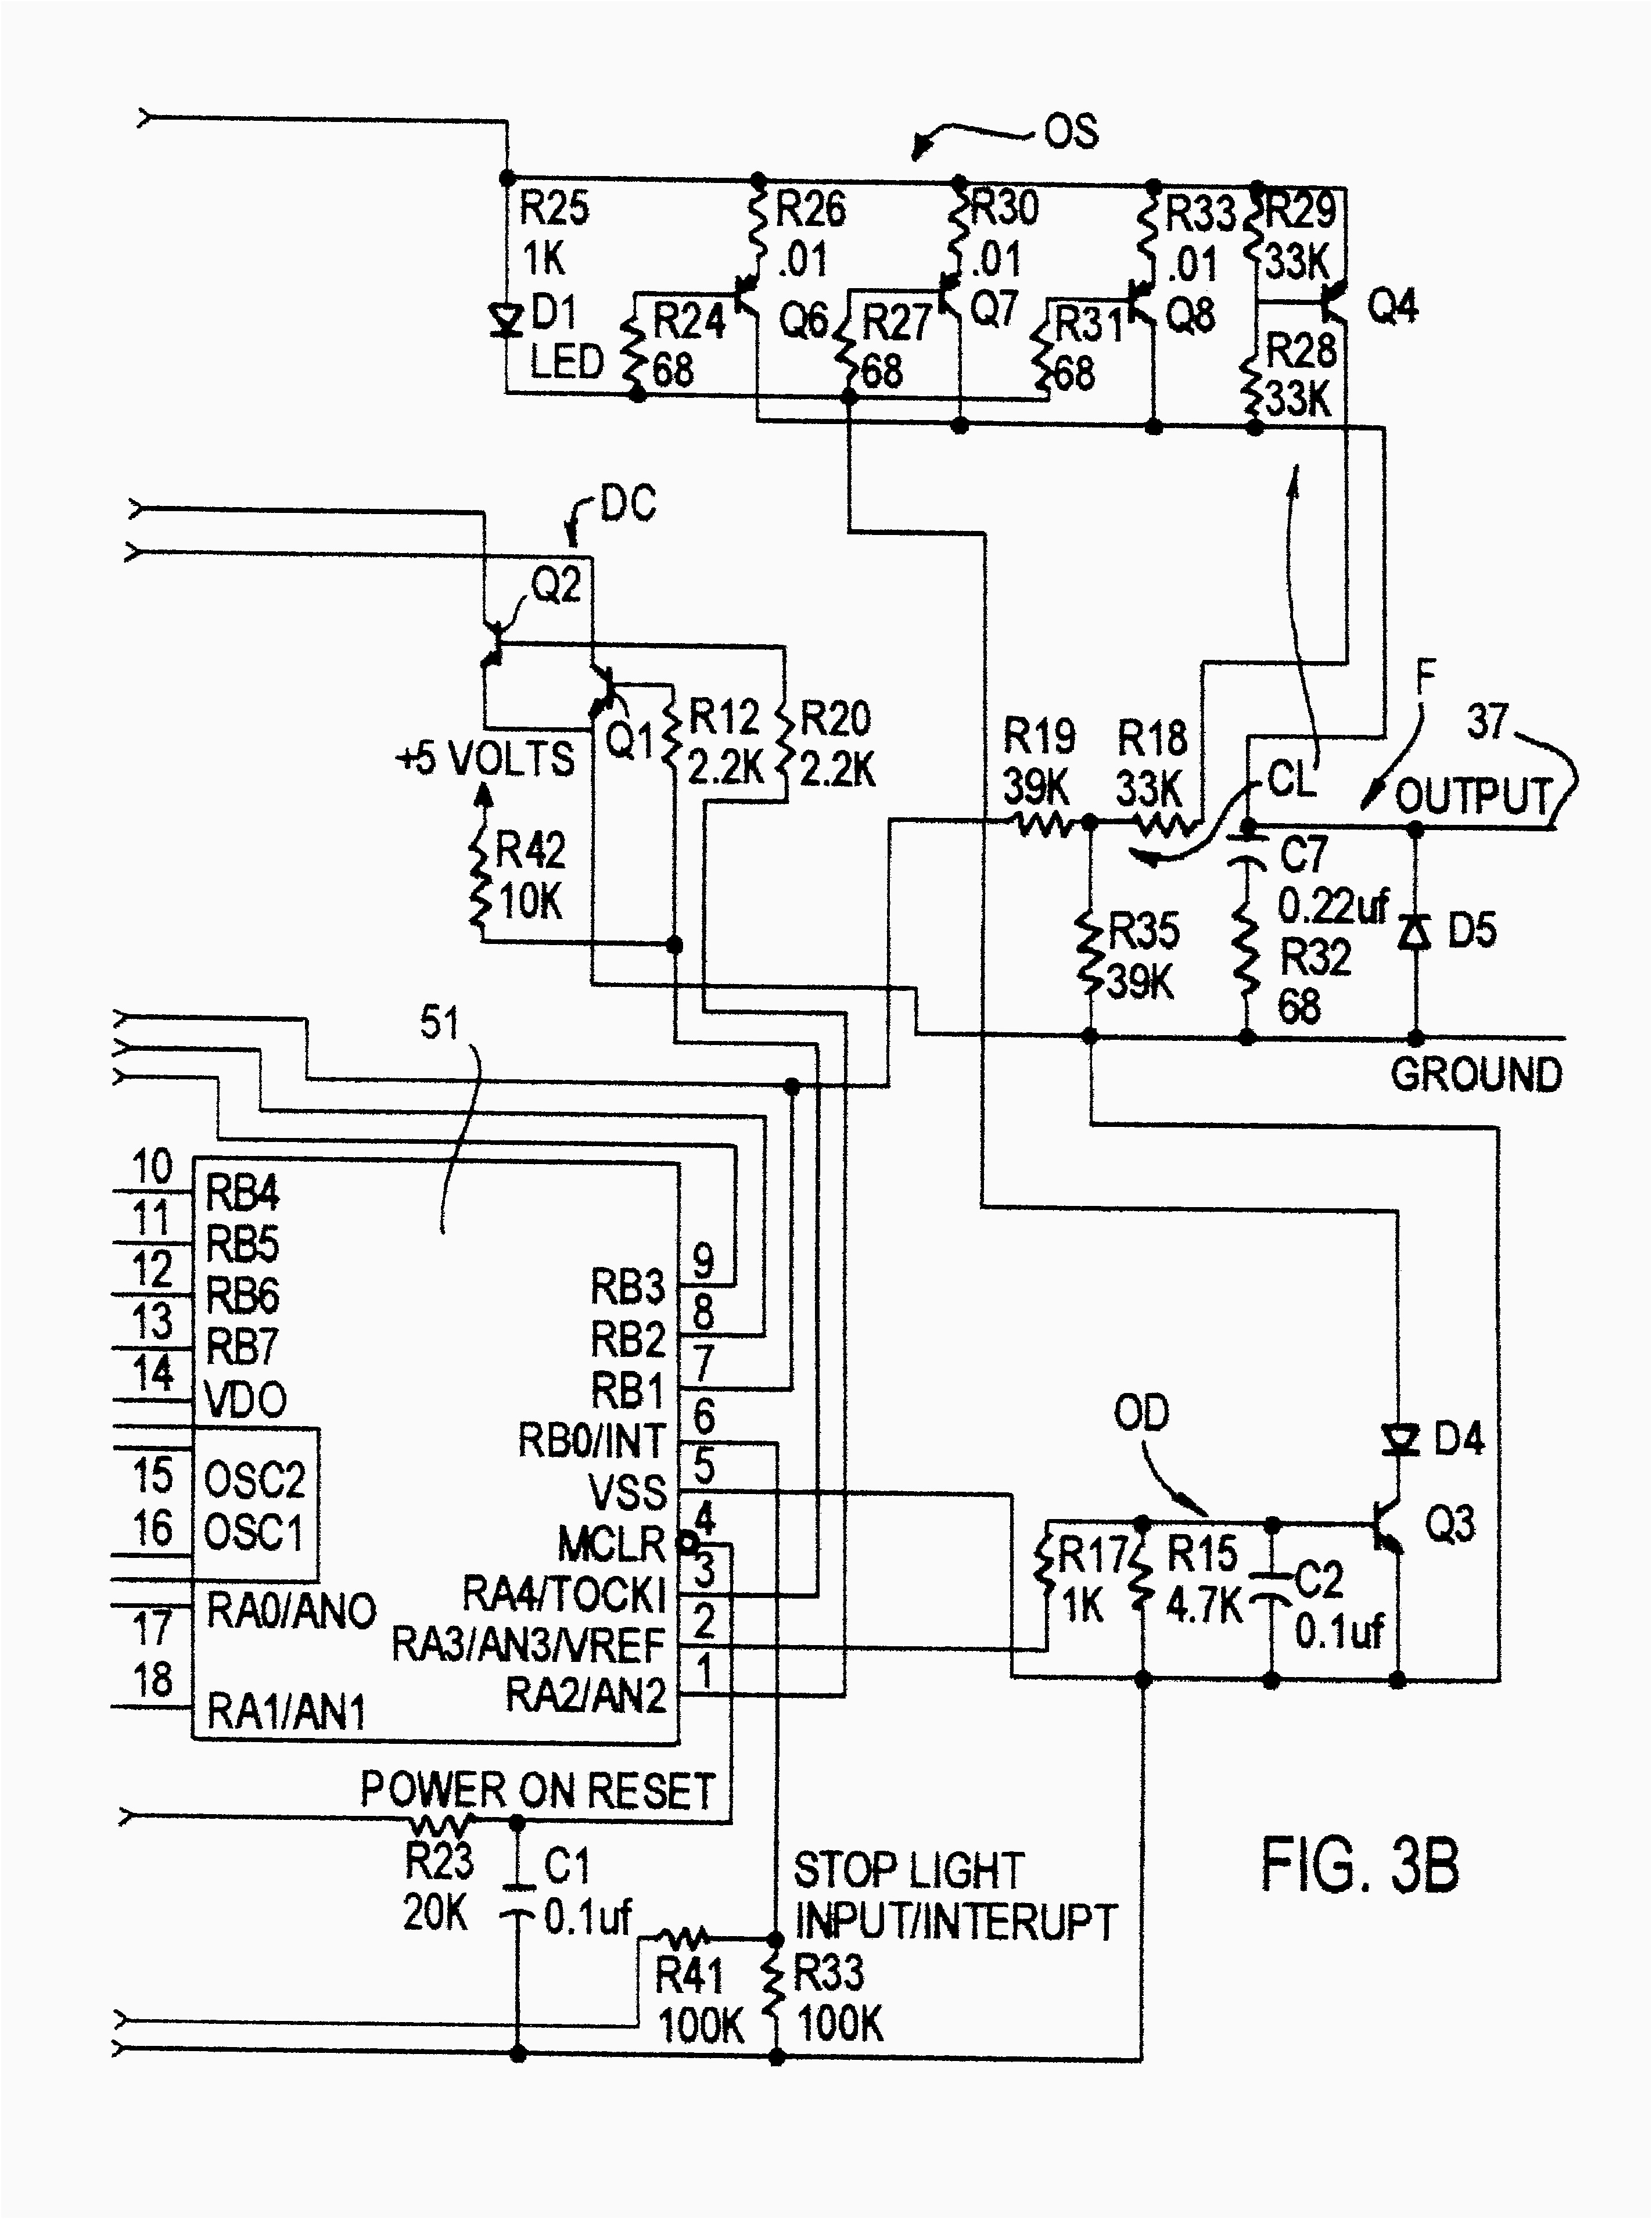 Modbo 760 Wiring Diagram